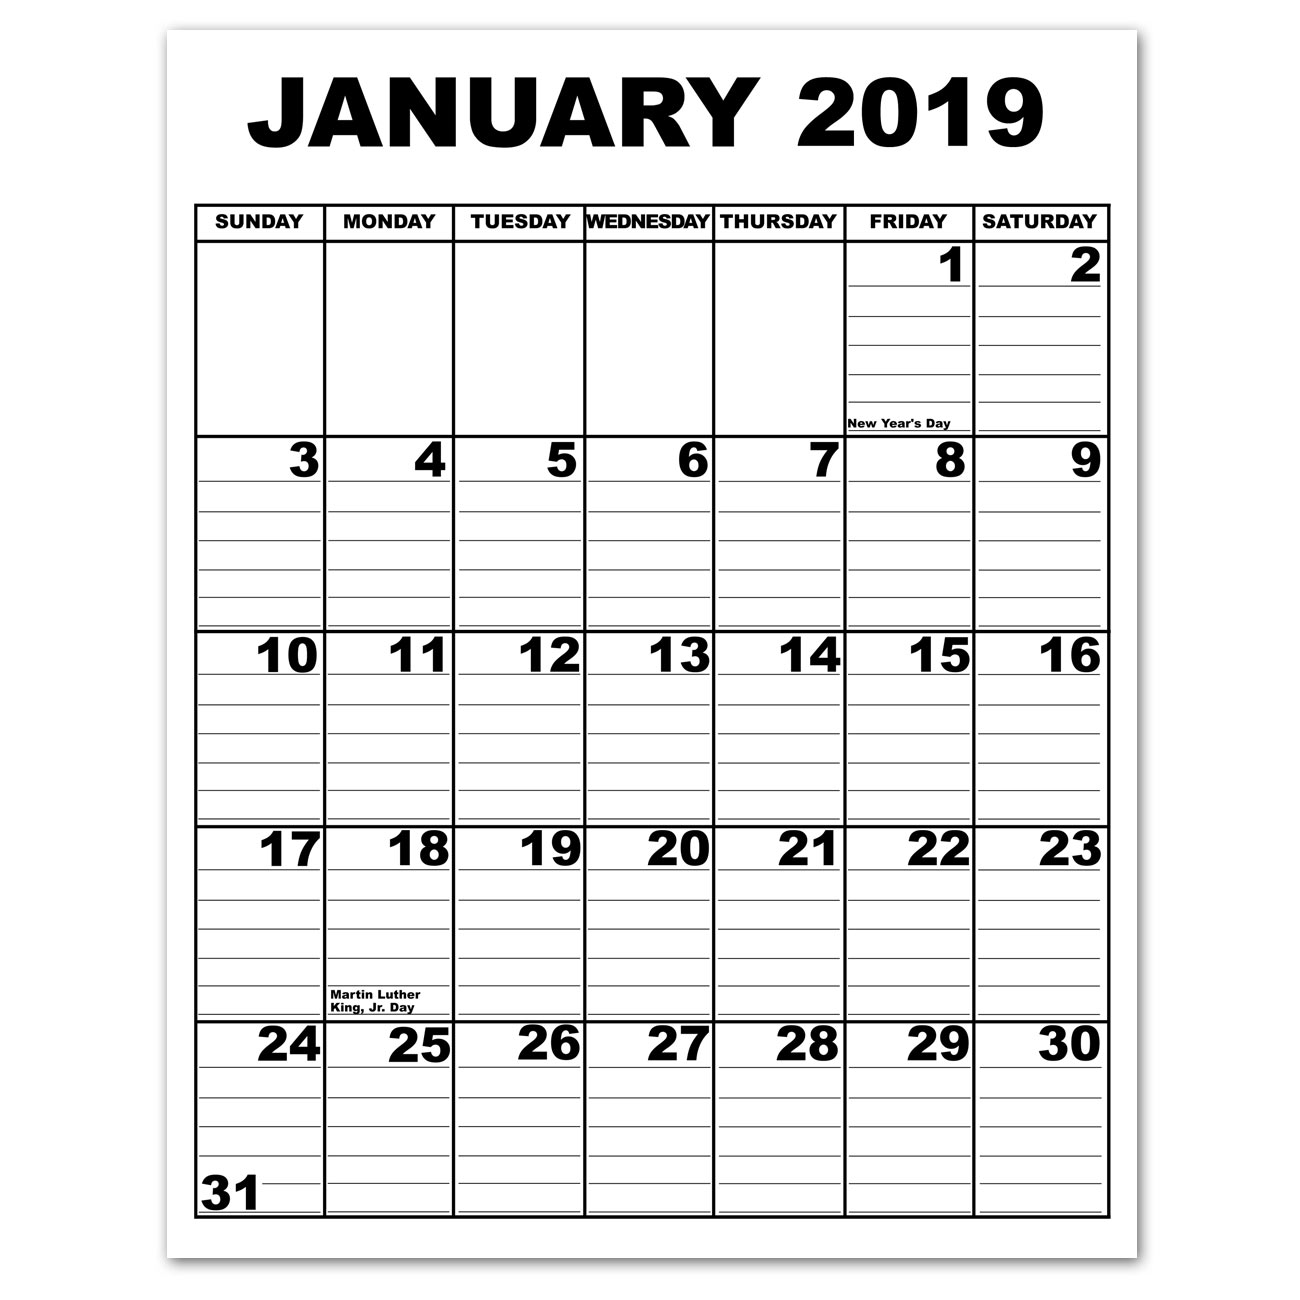 Giant Appointment Calendar 2019 - CLOSEOUT